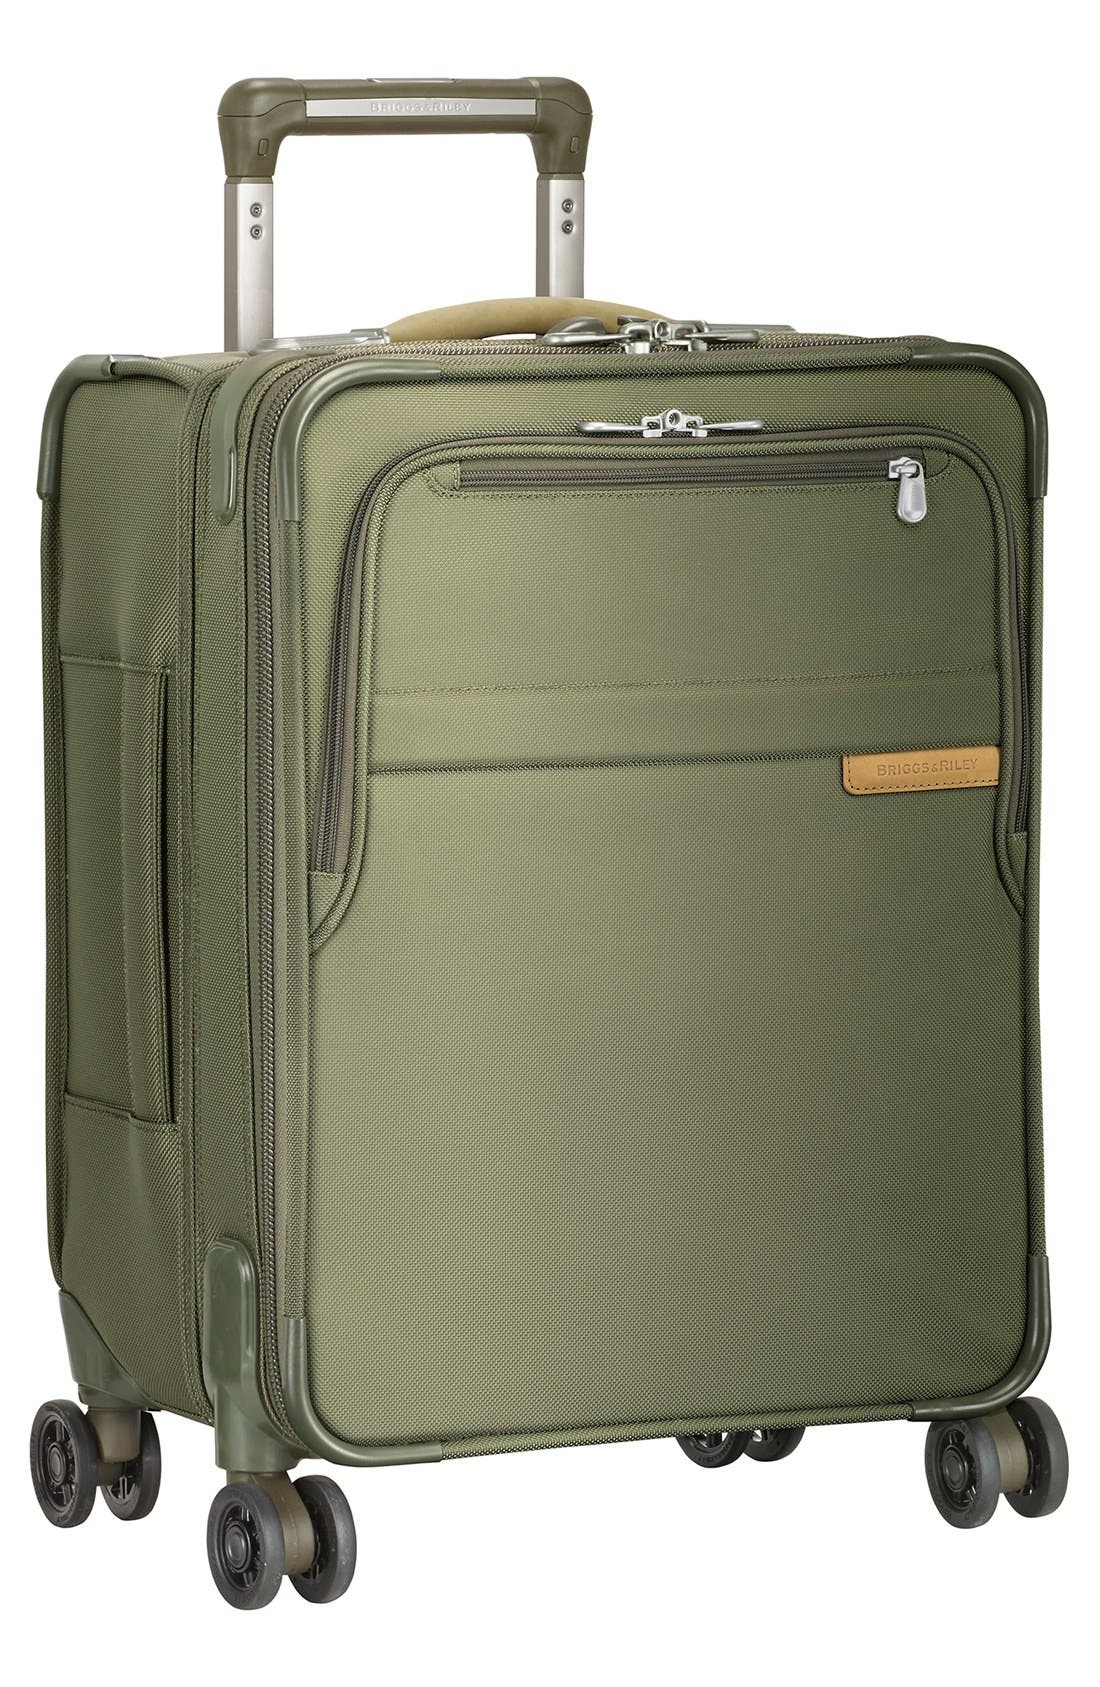 Alternate Image 1 Selected - Briggs & Riley 'Baseline - Commuter' Expandable Rolling Carry-On (19 Inch)